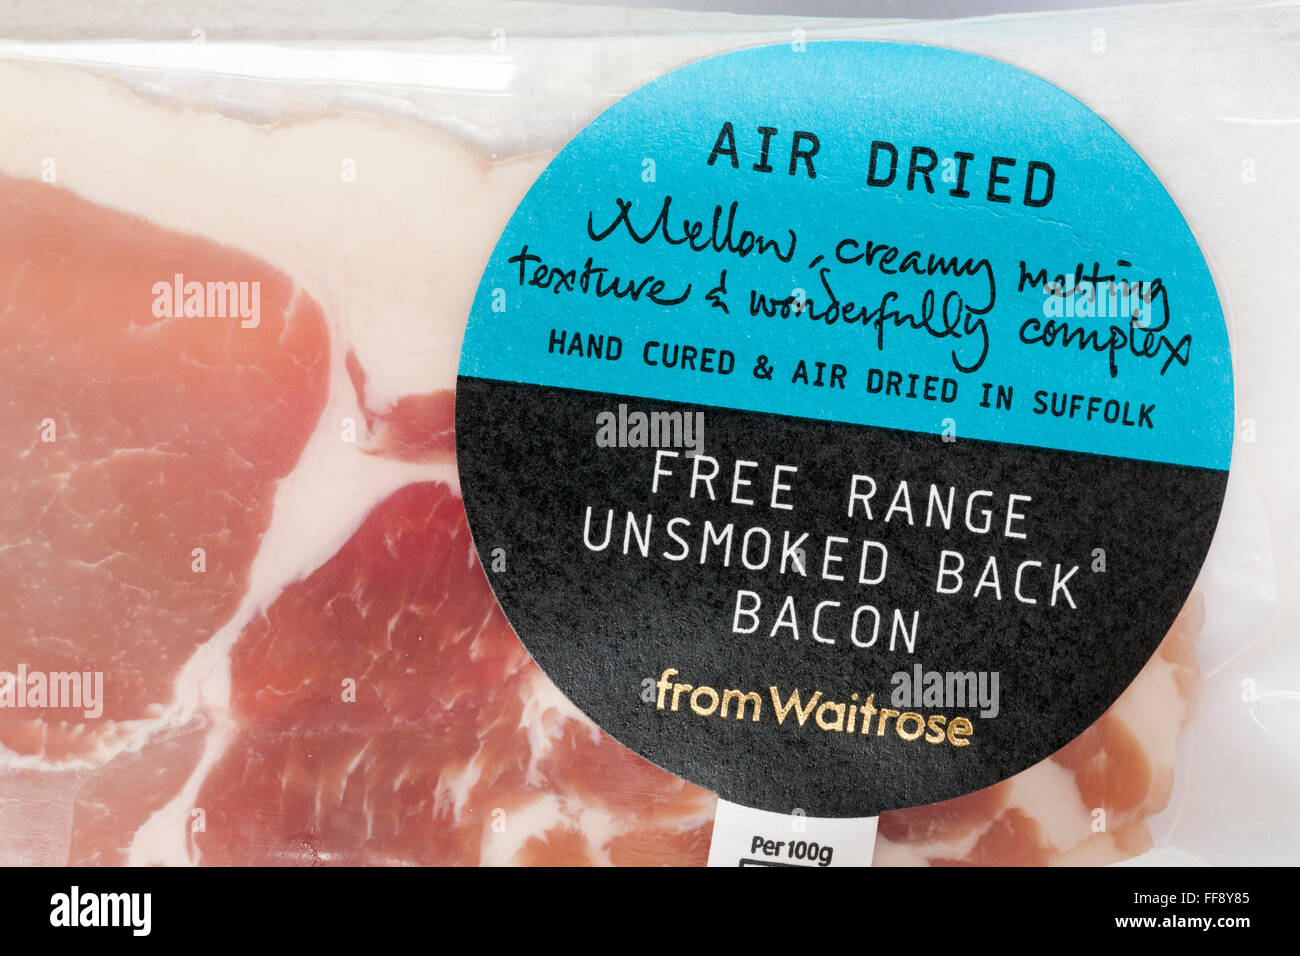 pack of Air dried free range unsmoked back bacon from Waitrose - Stock Image